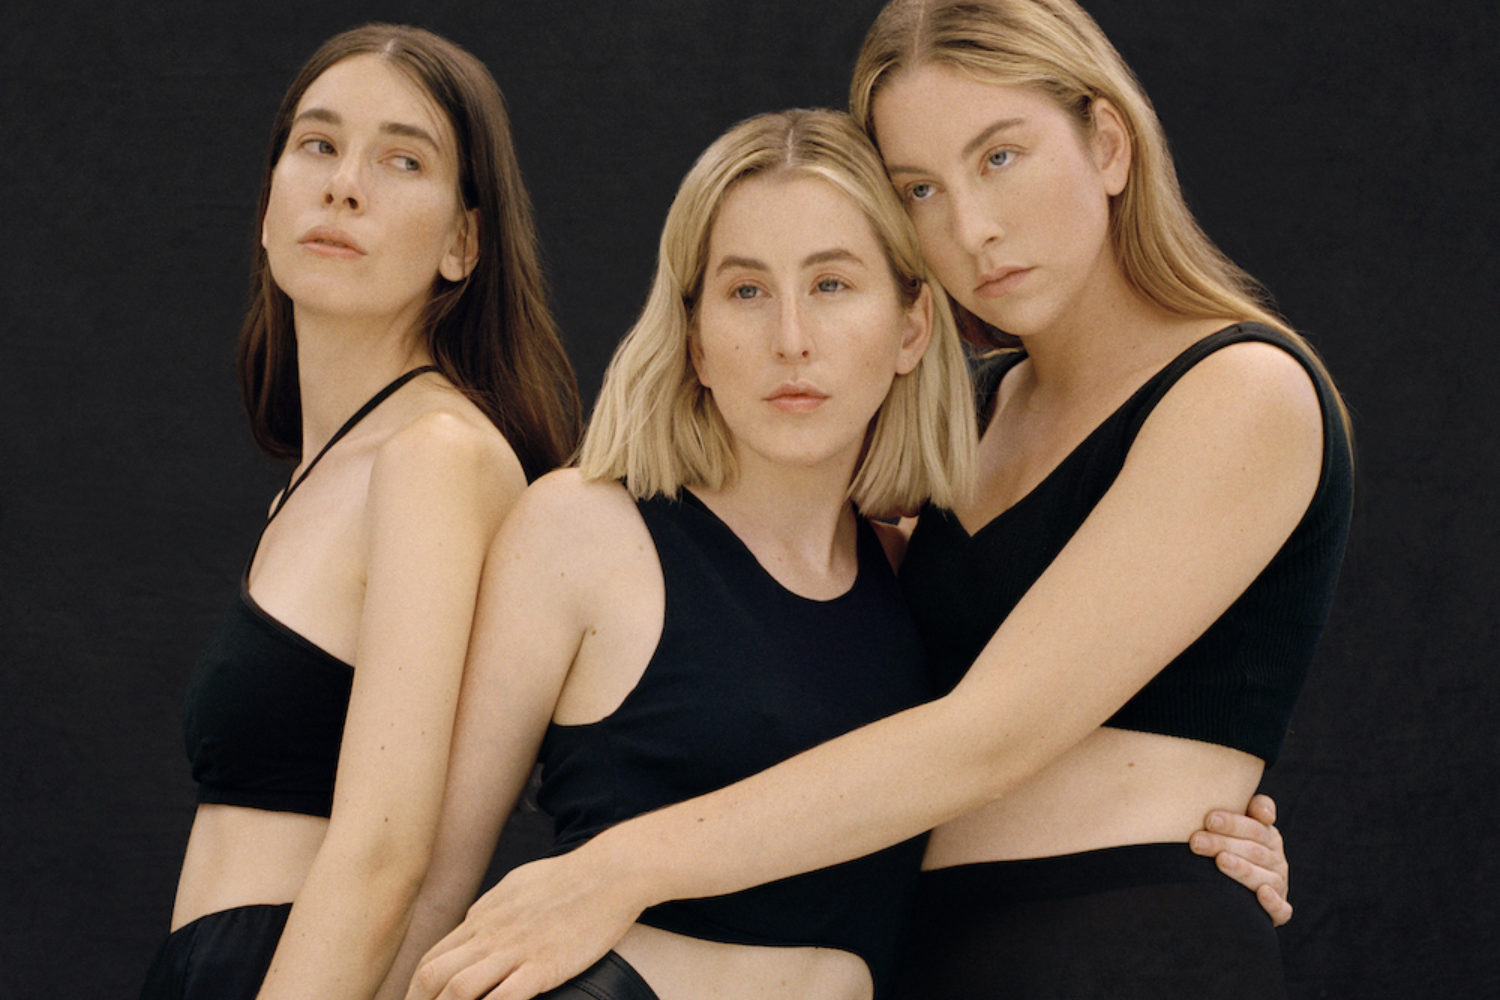 Haim release new track 'Cherry Flavored Stomach Ache'